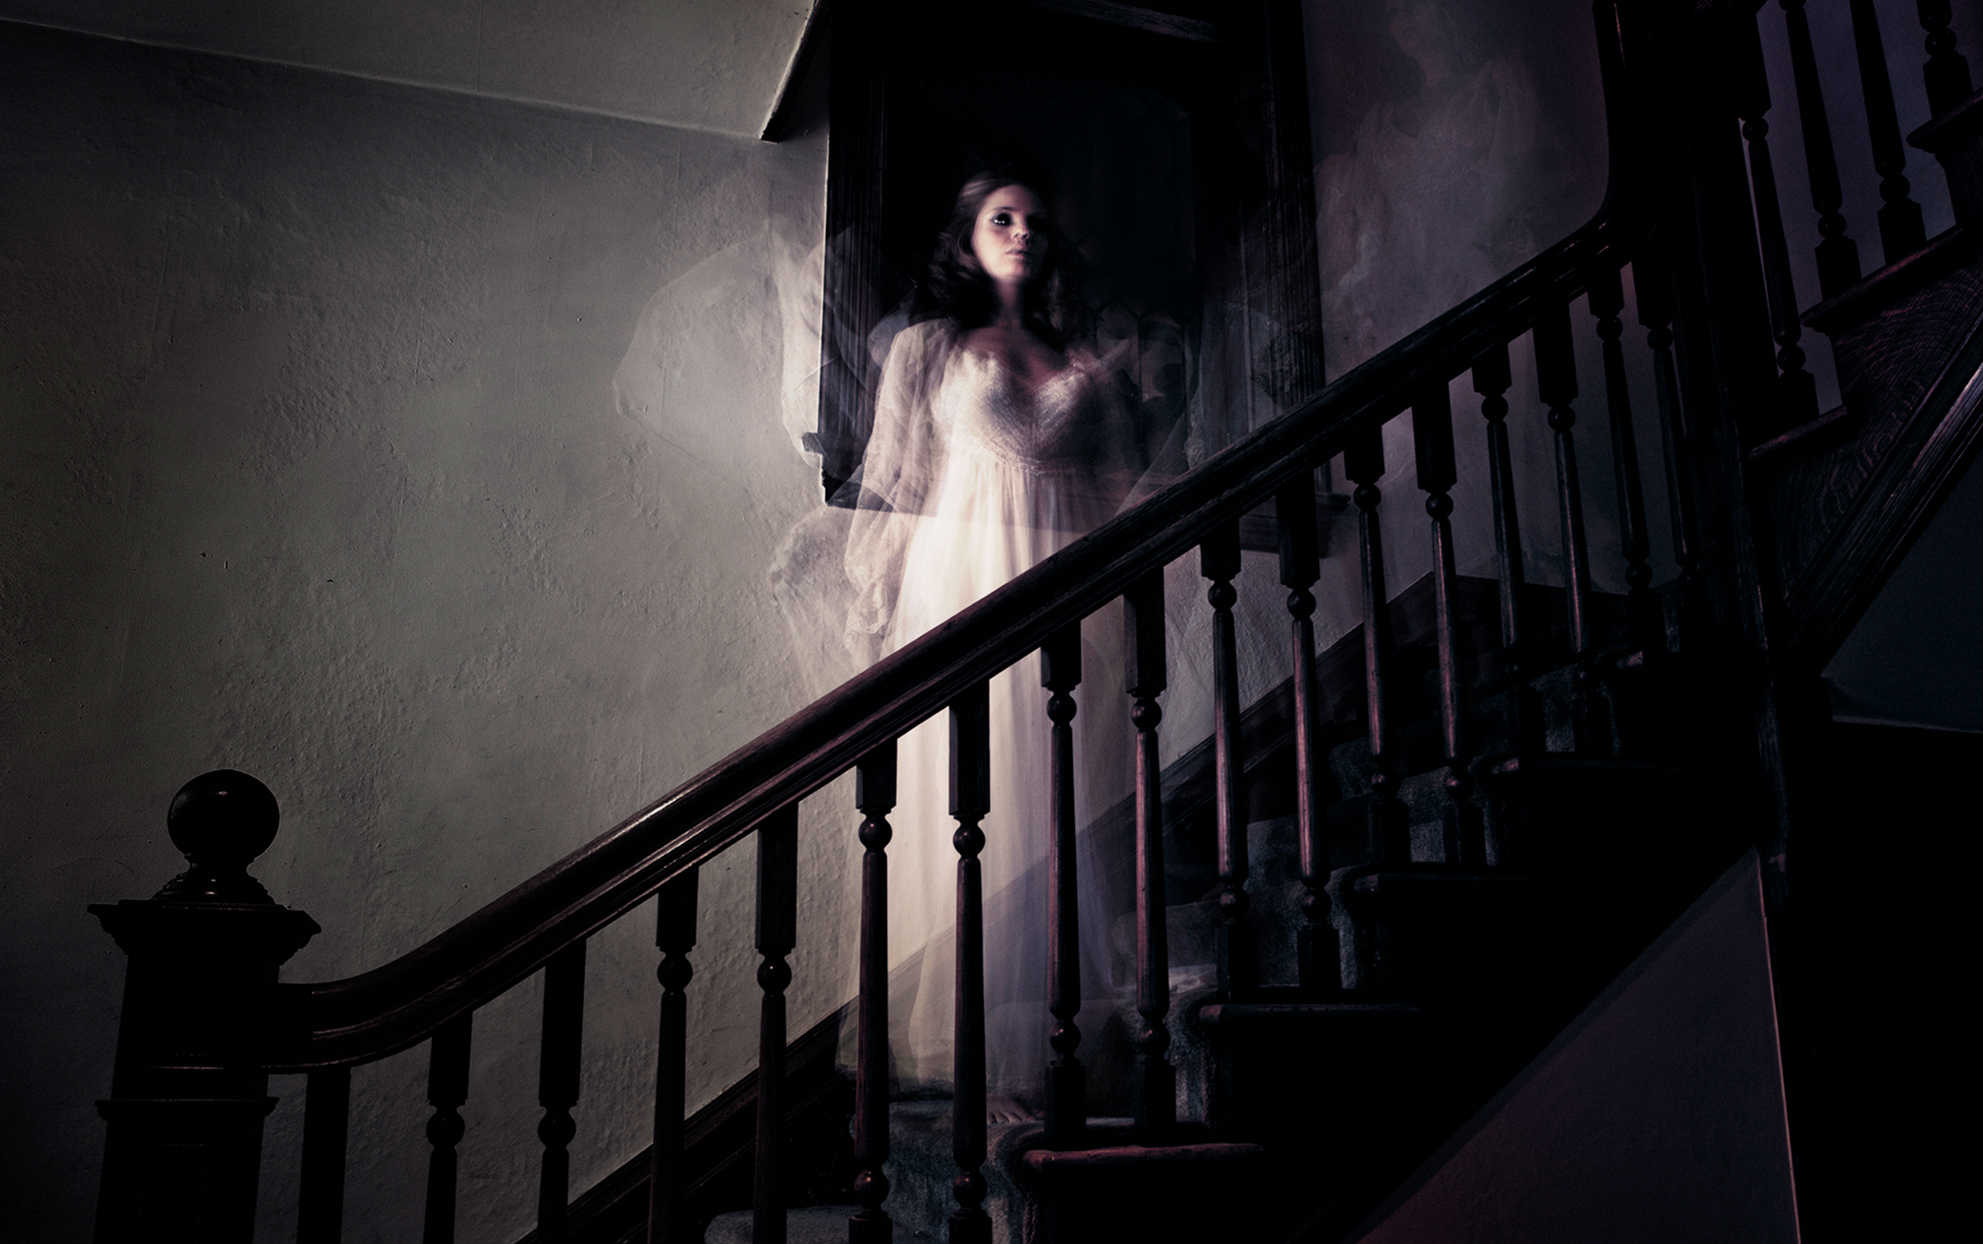 ghosty woman on the stairs in a paranormal house